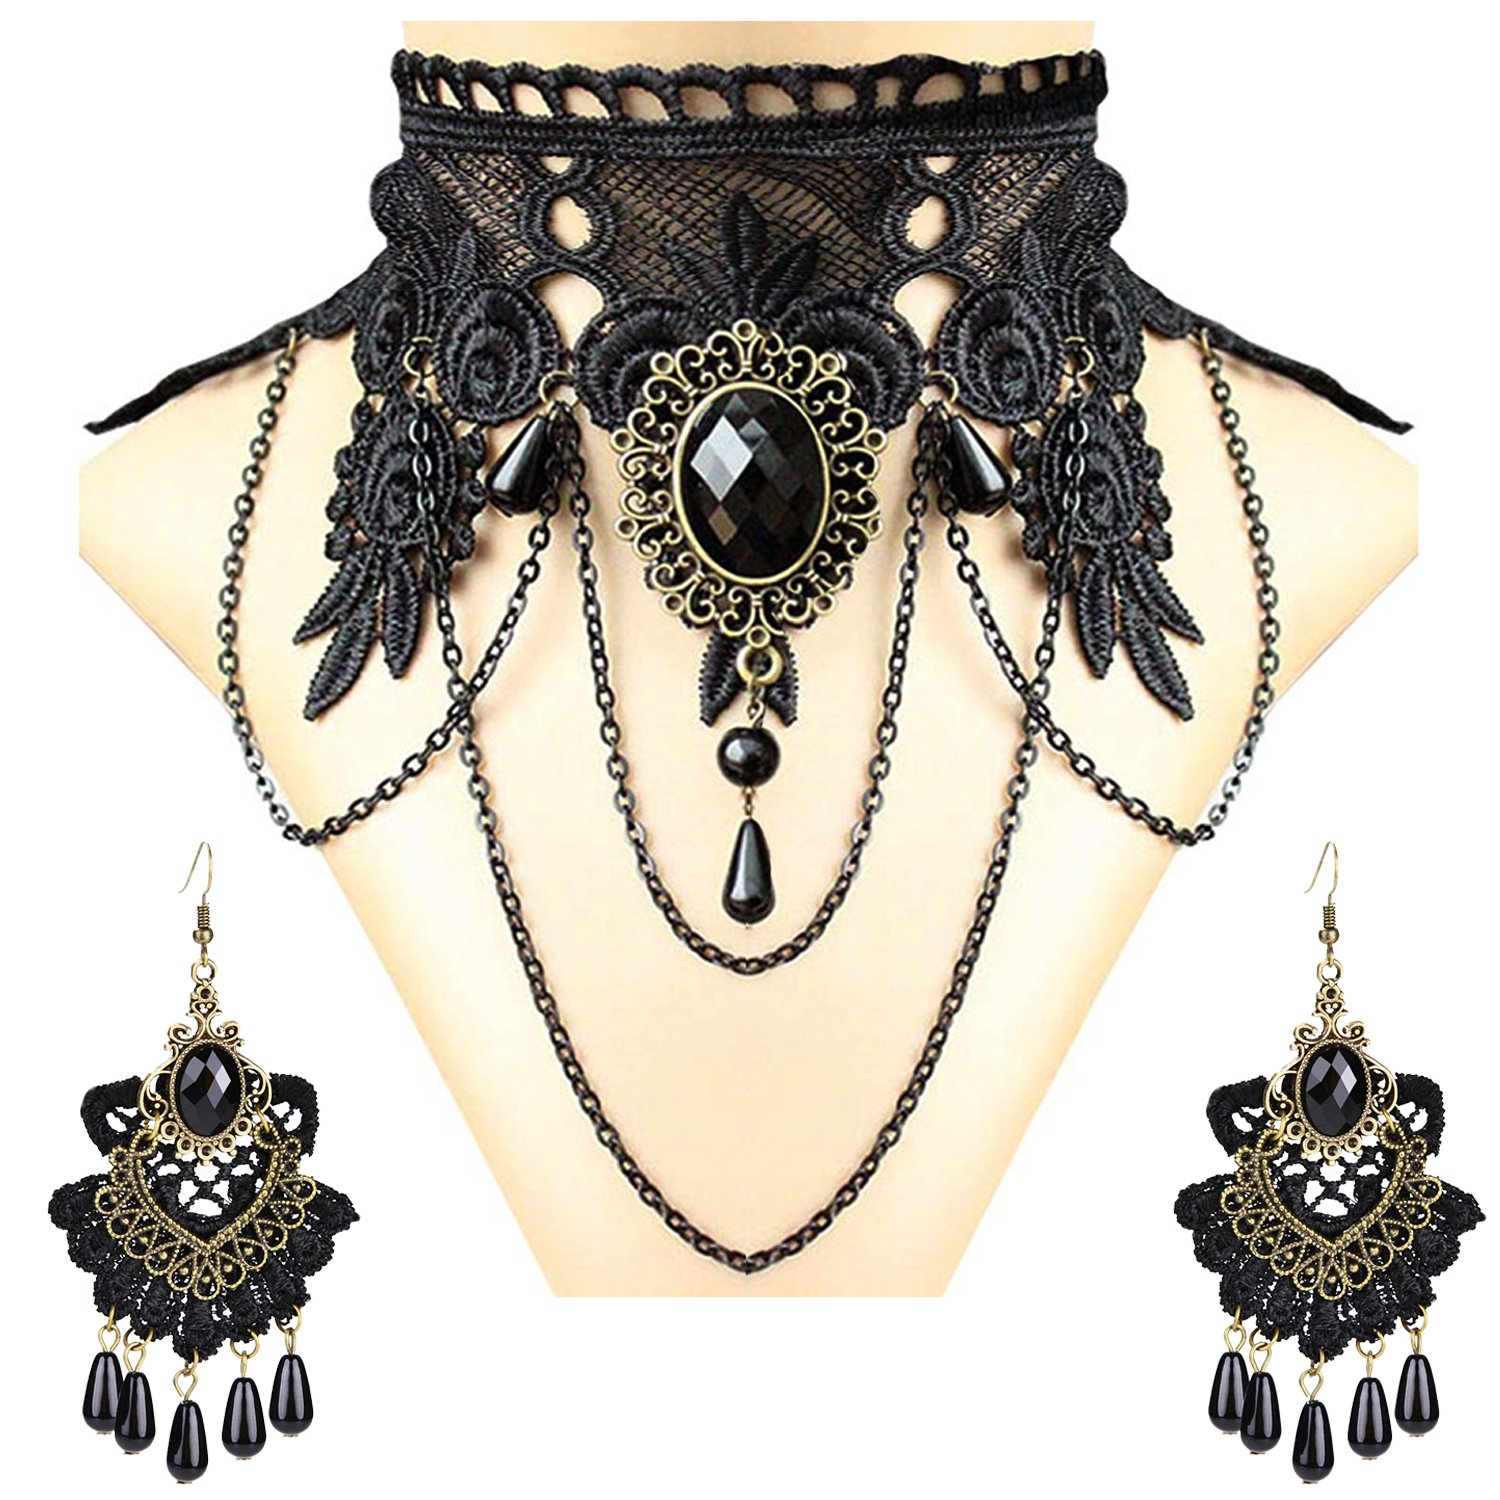 Aniwon Punk Style Wedding Party Black Lace Choker Beads Tassels Chain Pendant Necklace Earring Set for Women…